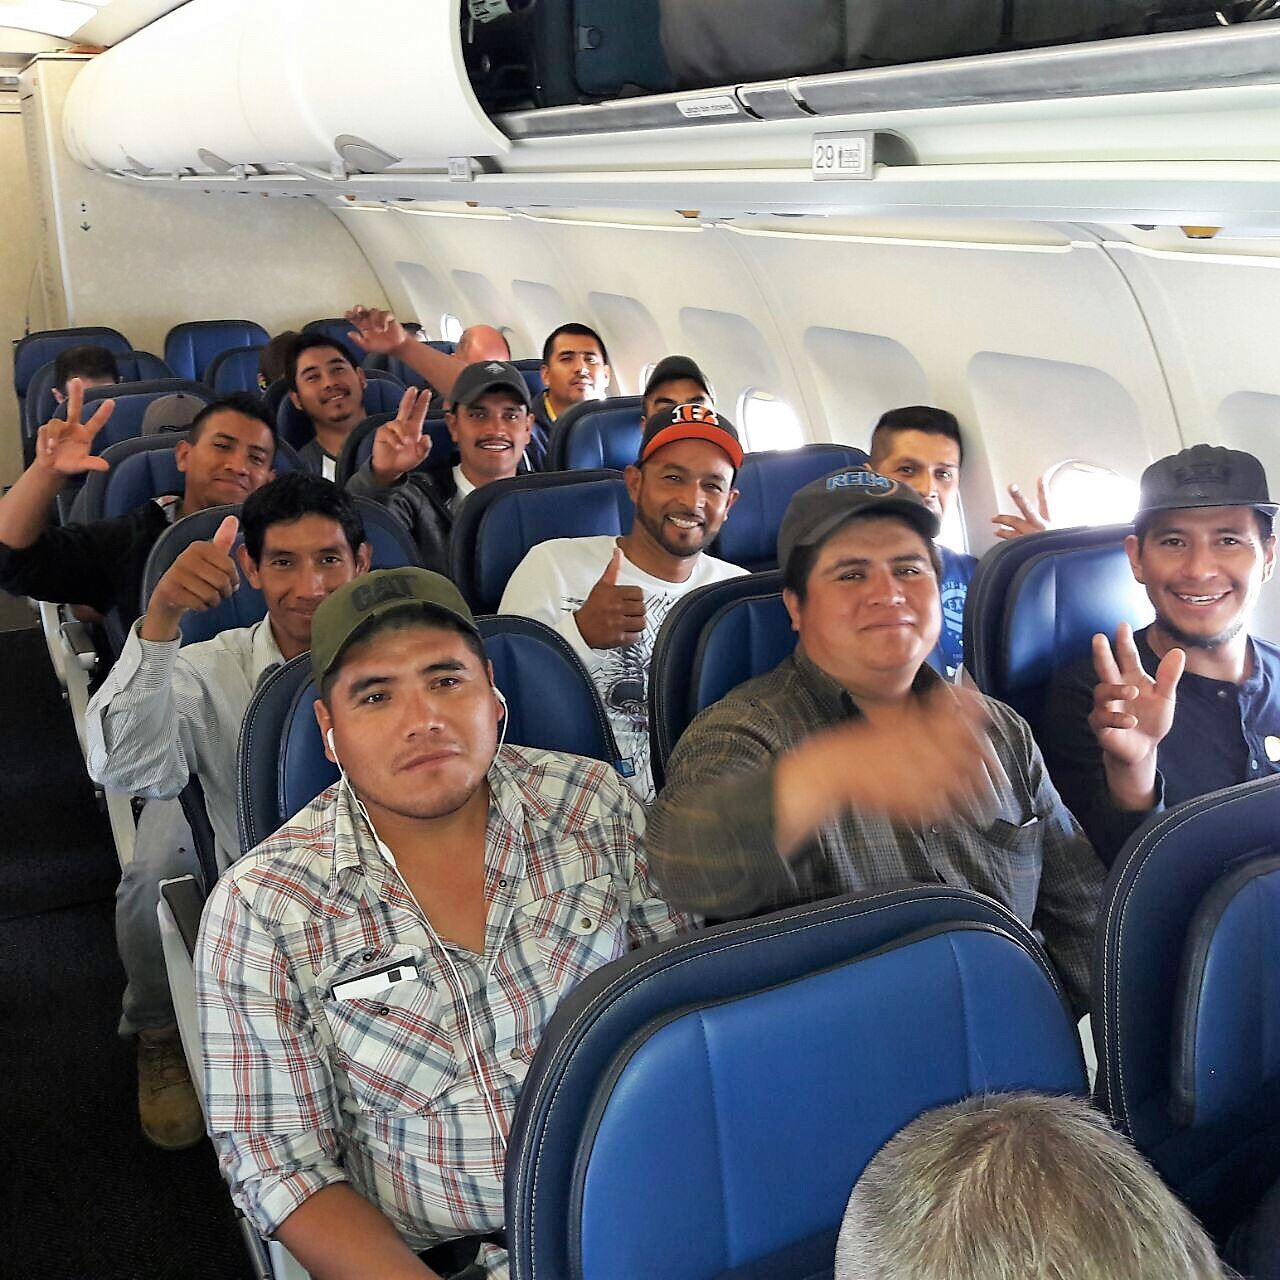 Foreign-Workers-Not-From-Mexico-Pt-1